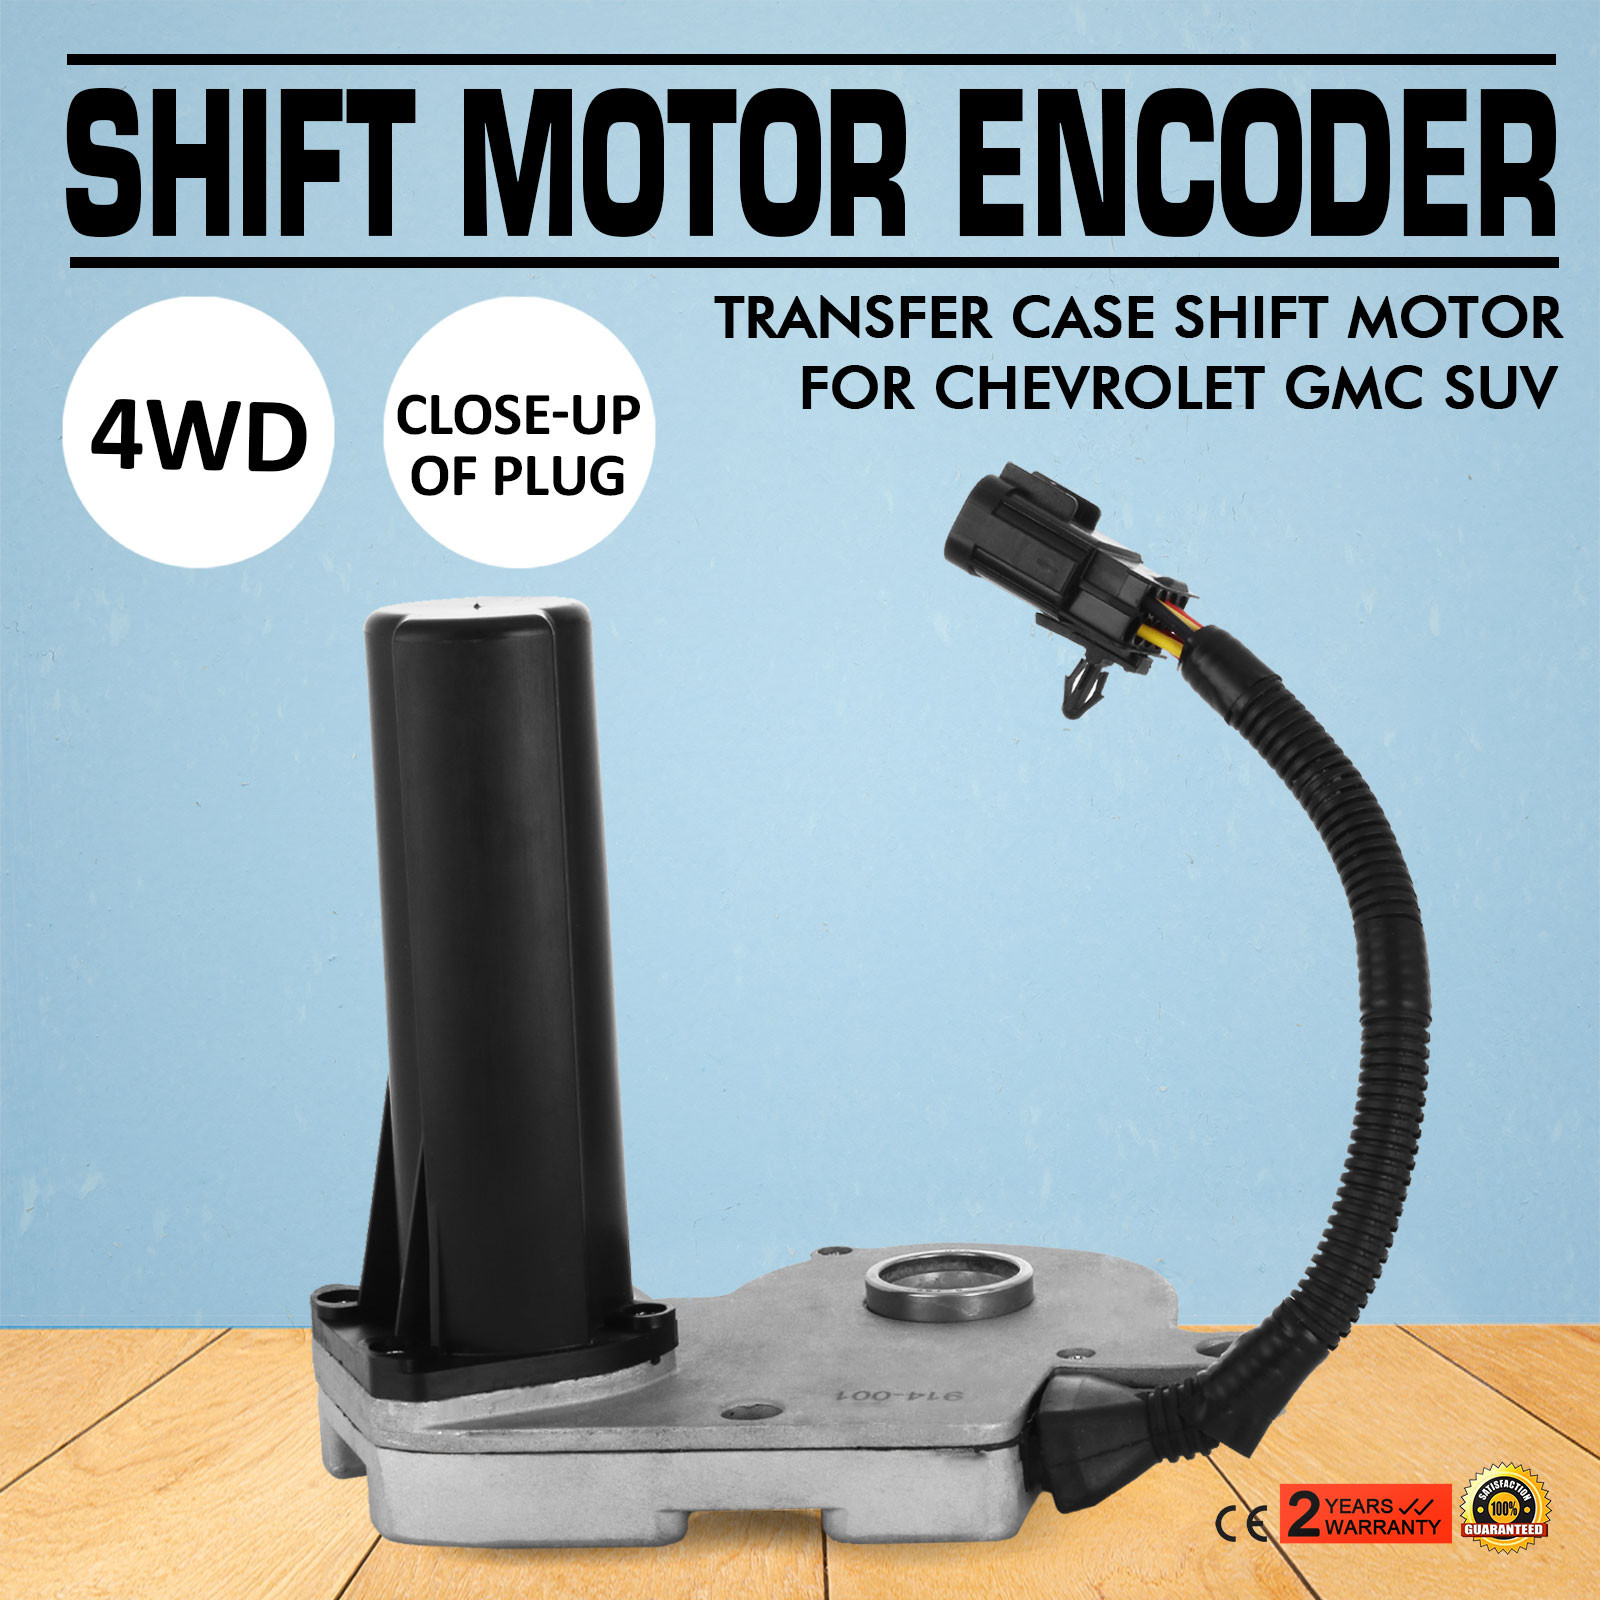 4wd Transfer Case Shift Motor Encoder For Chevrolet Gmc Suv With Rpo 1966 Wiring Watch This Item Email A Friend